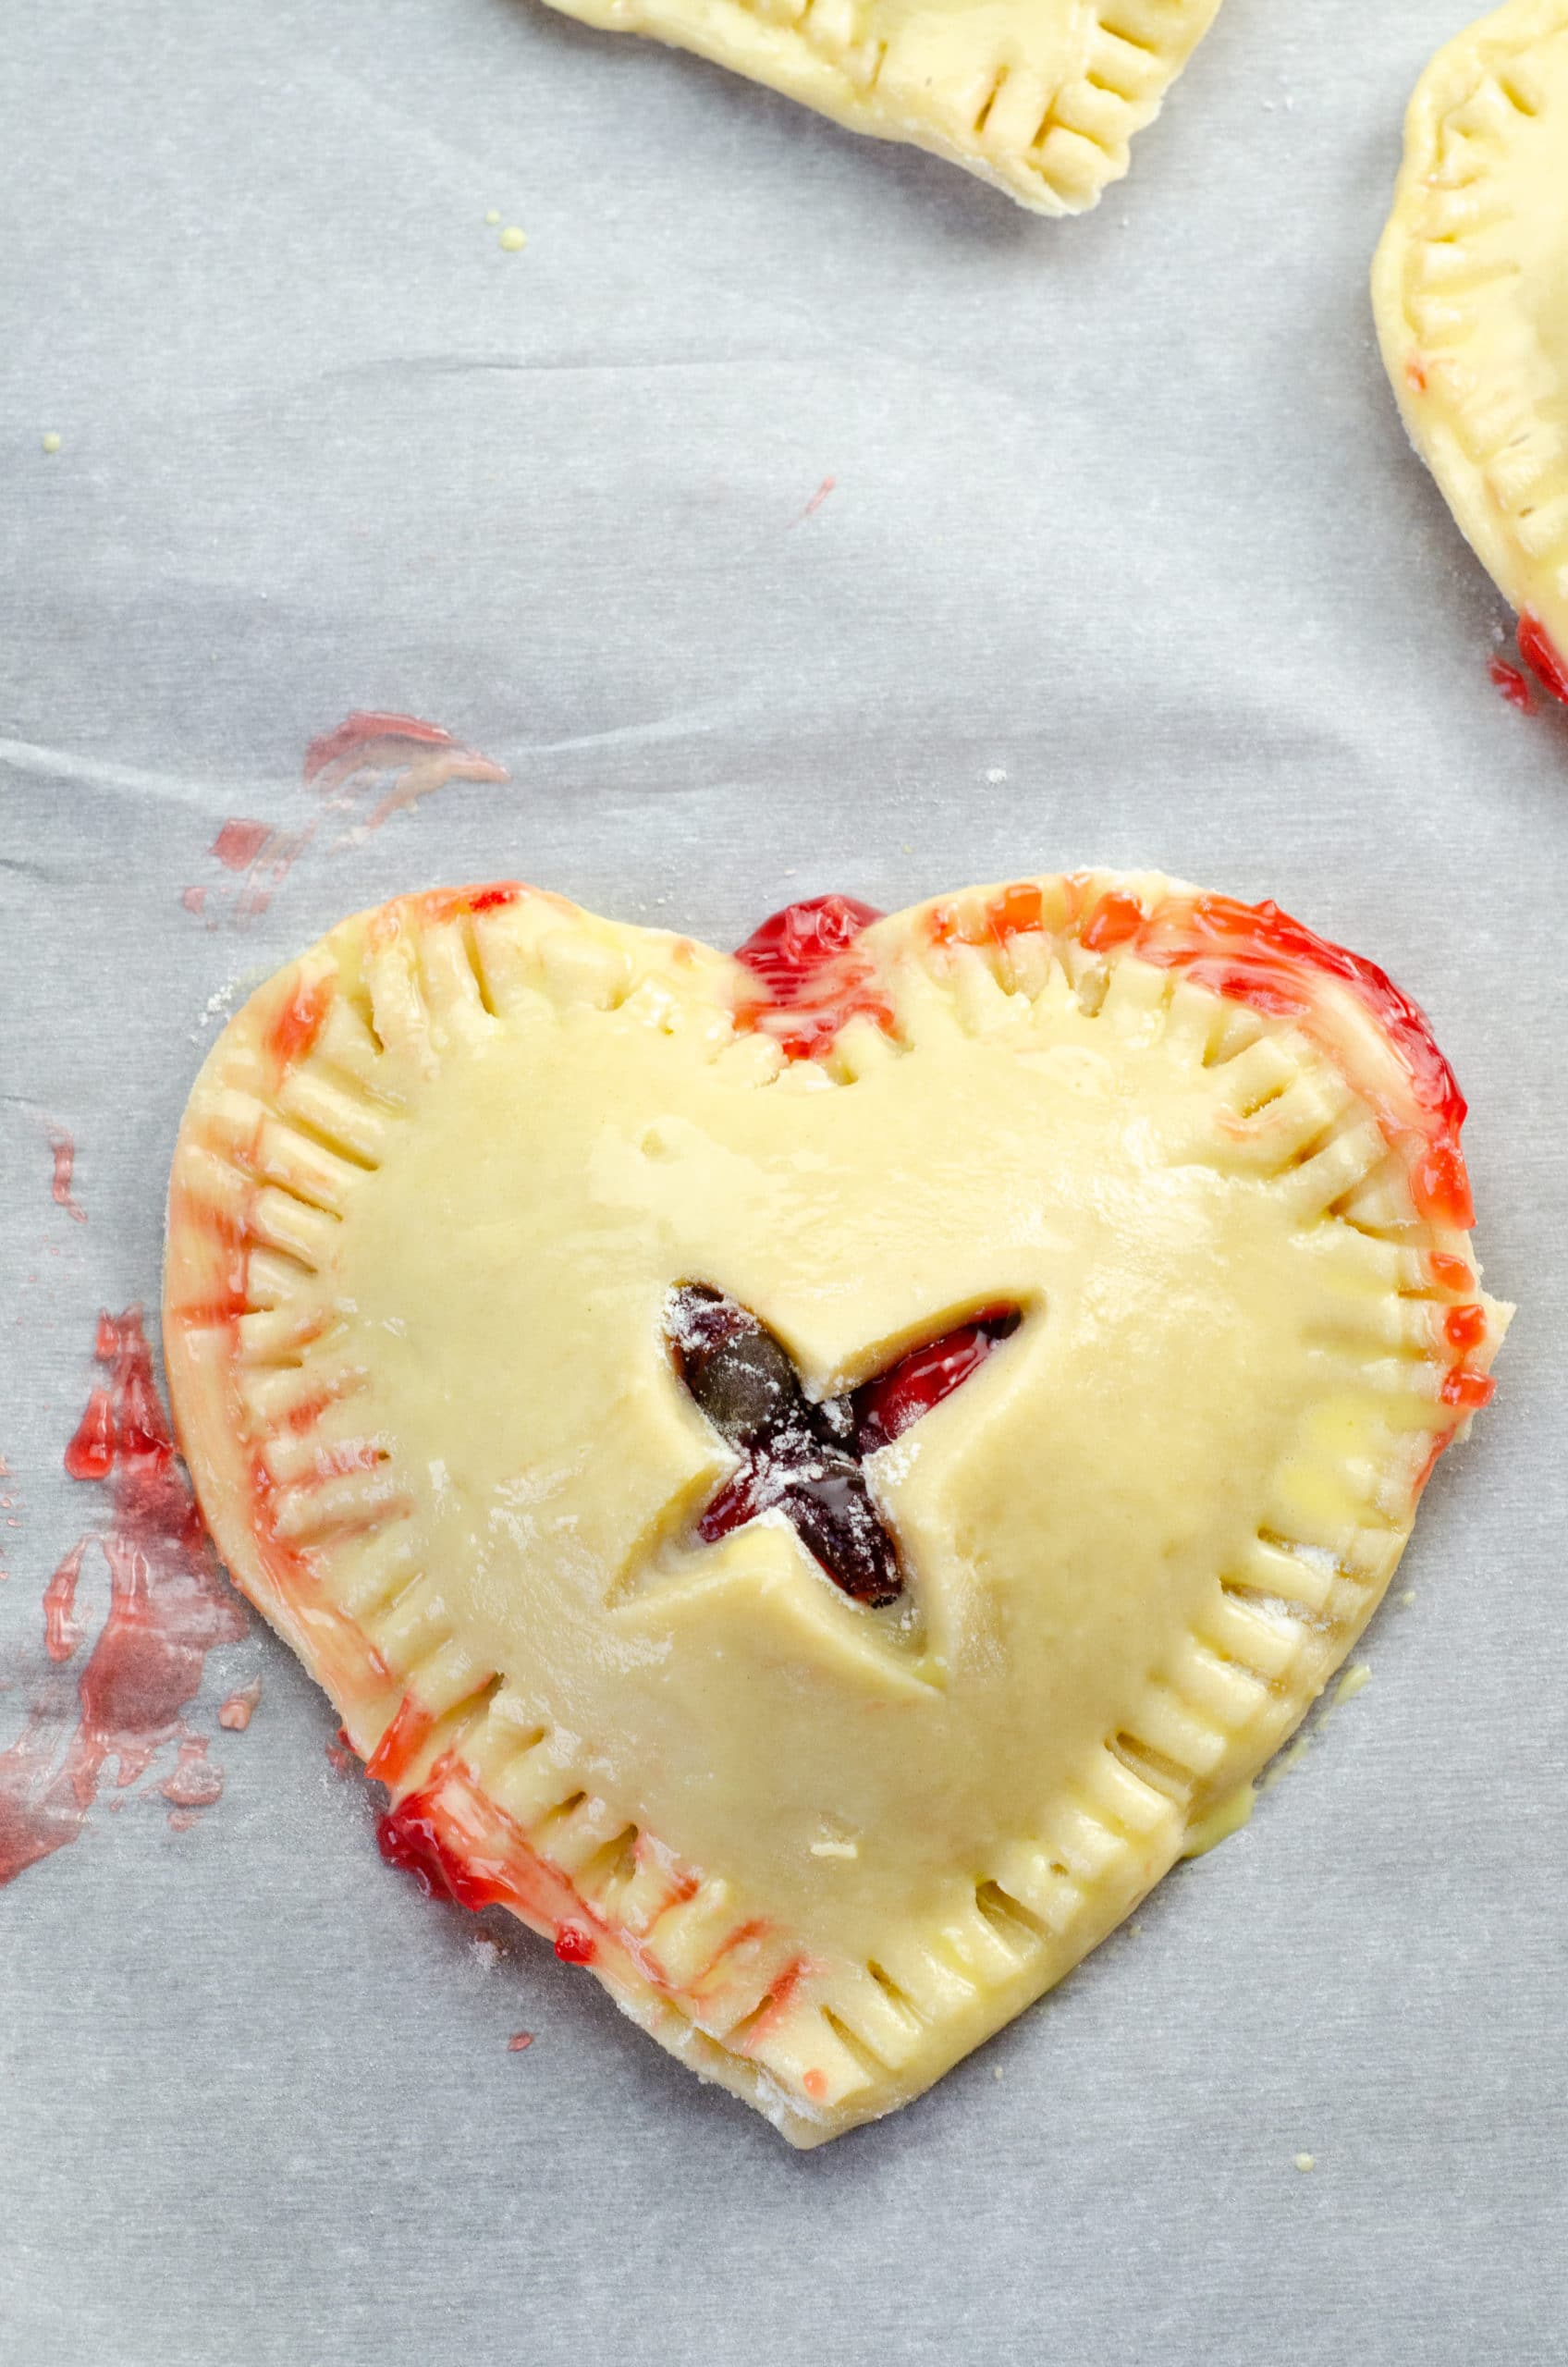 Chocolate Cherry Hand Pies Egg Wash. Say I heart you to someone special this Valentine's Day with a delicious homemade treat. Try my super easy to make Chocolate Cherry Hand Pies which include a from scratch buttery flaky pie crust.